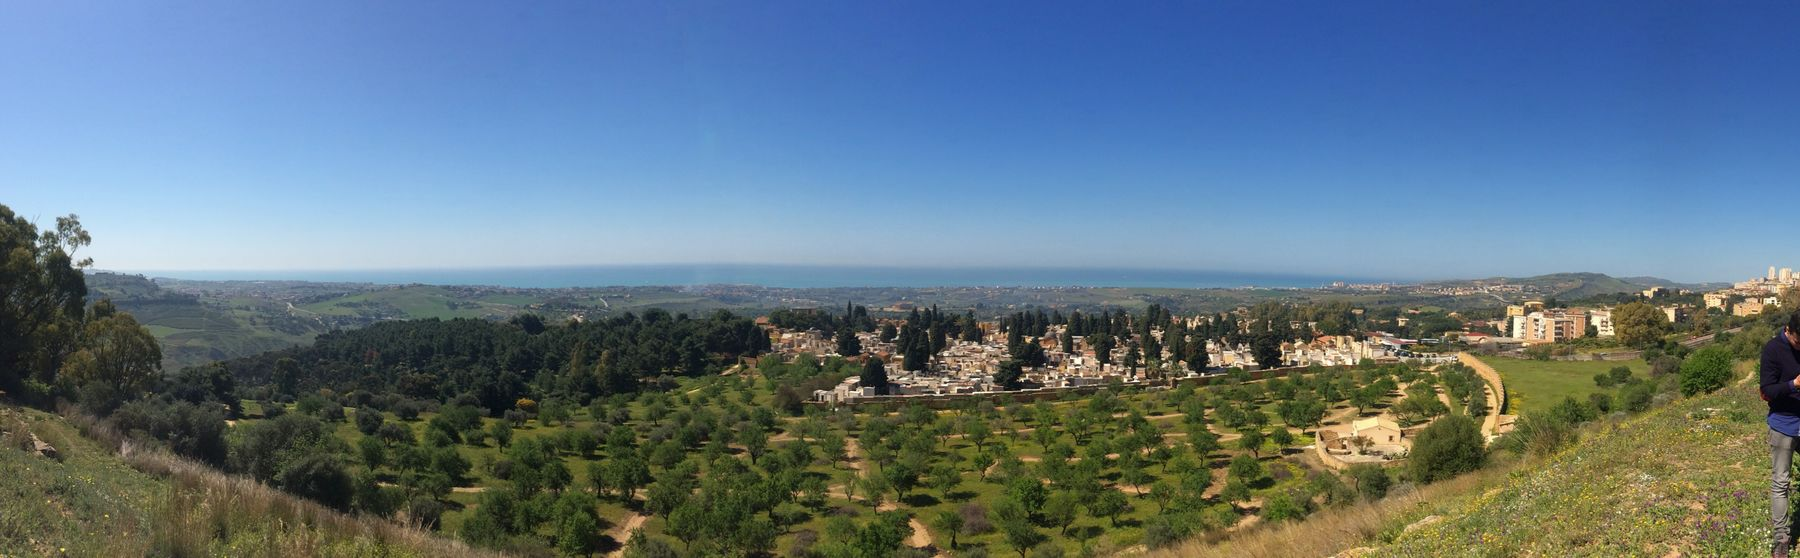 Te prego, o splendida, più bella tra le città dei mortali. (Pindaro) Agrigento Culture Sicily Panoramic Photography Panoramic View Panorama Withiphone Nofilter Just Taking Pictures Taking Photos Beautiful View Followme Follow4follow Iphonephotography Follow_me Akragas Agrigentum Infinity And Beyond Temples Greek